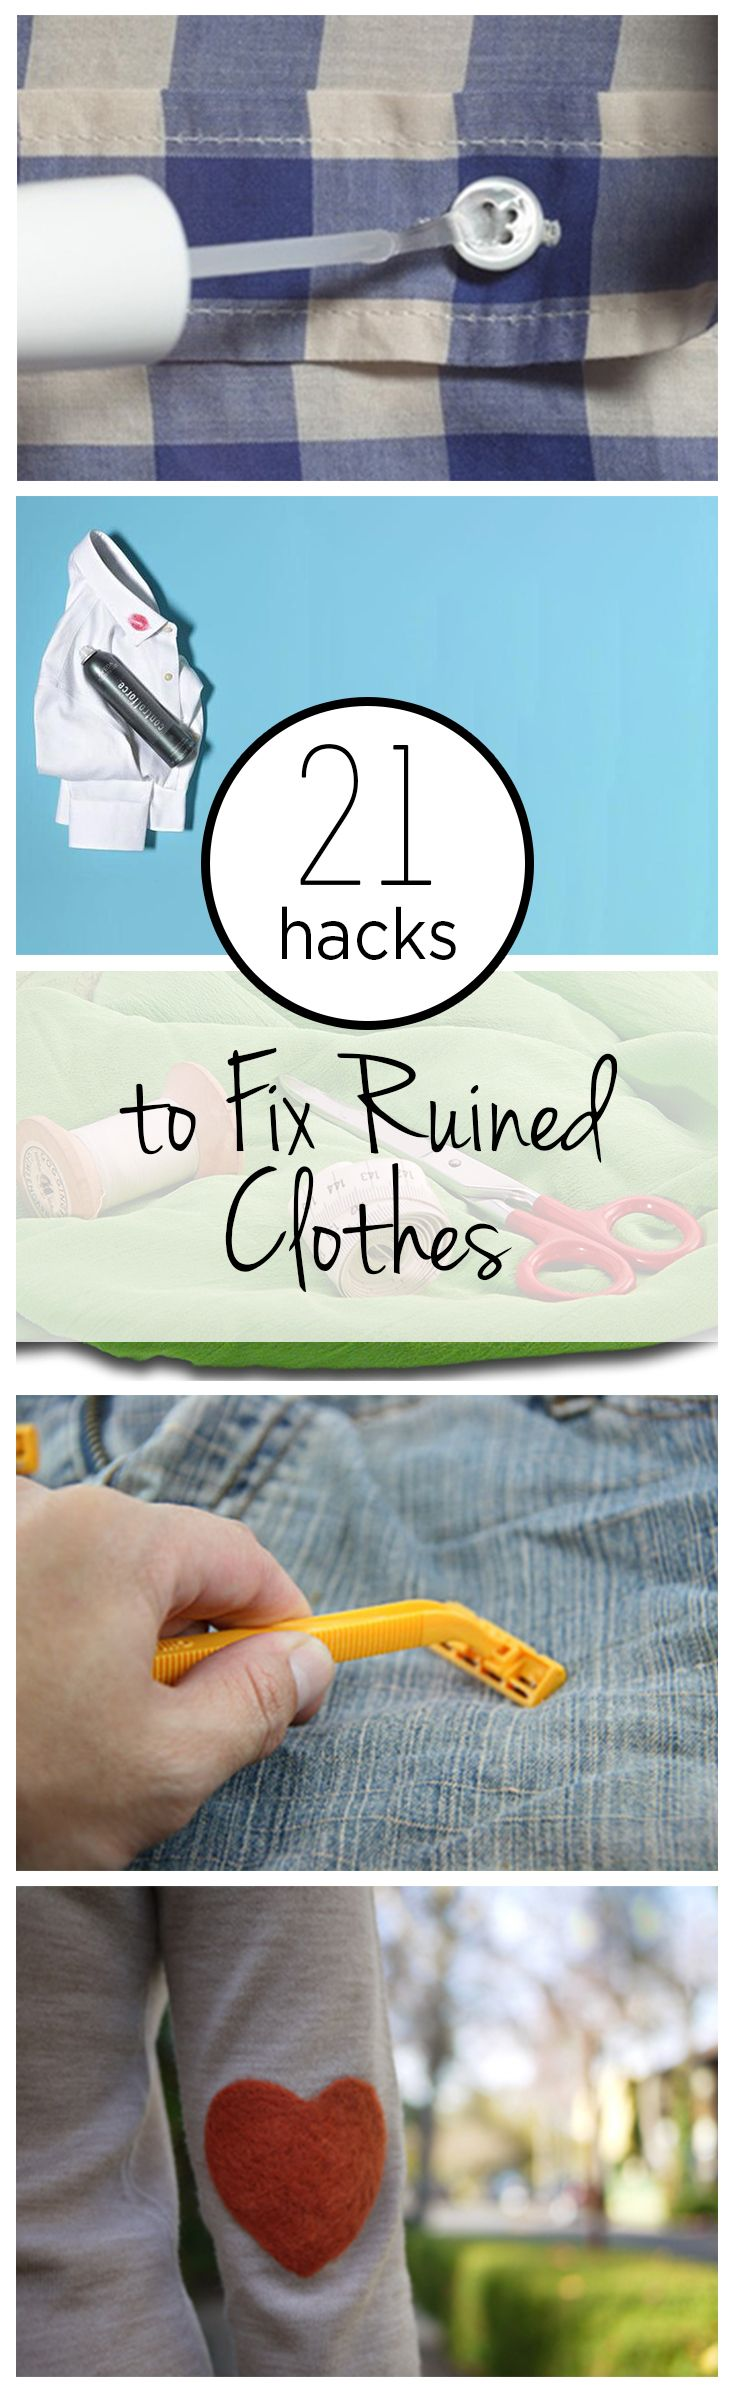 21 Hacks to Fix Ruined Clothes